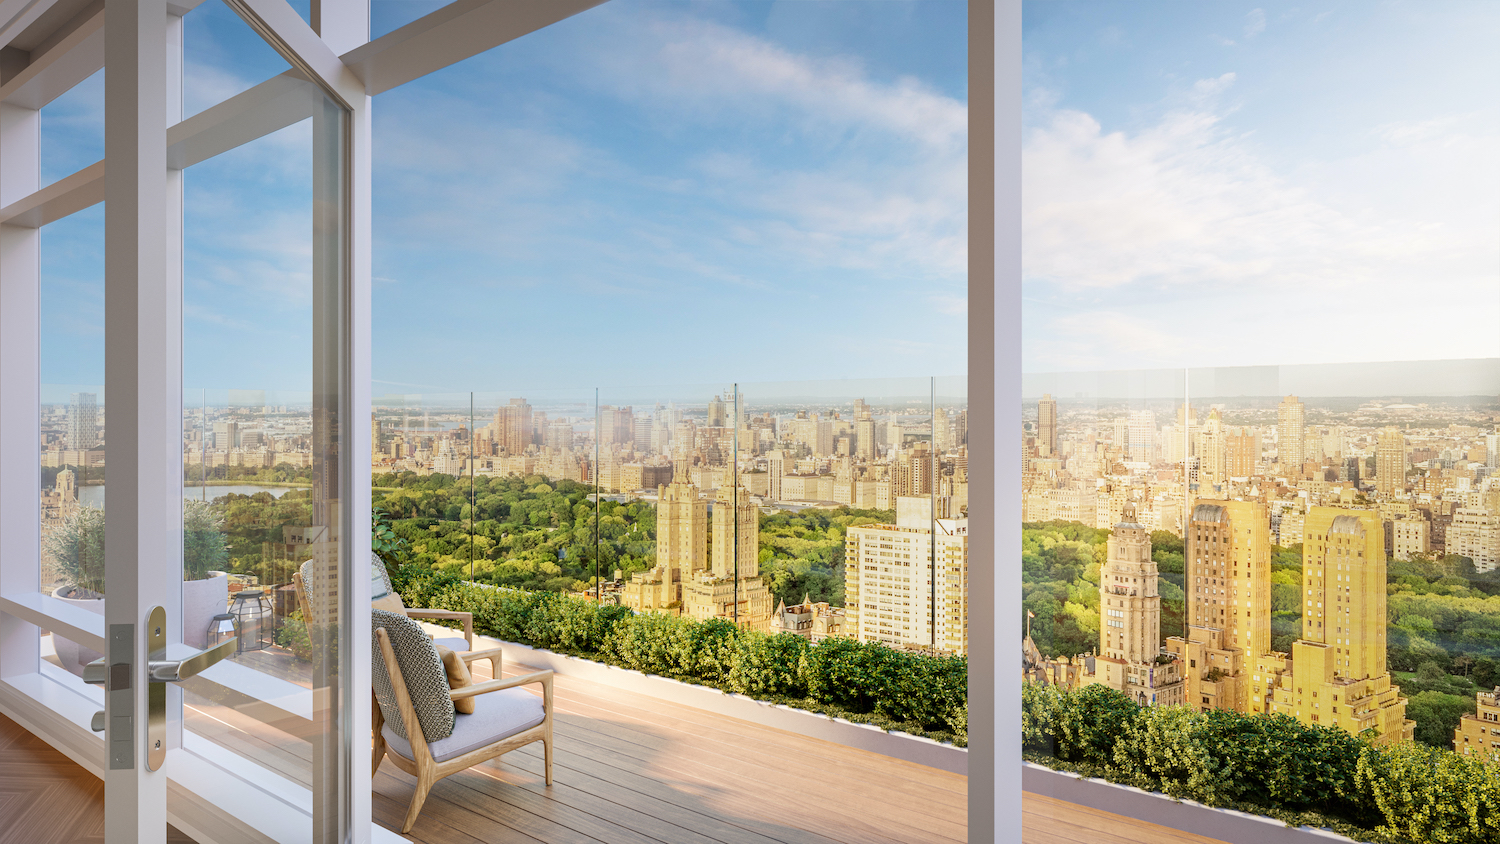 Penthouse terrace at 200 Amsterdam on the Upper West Side